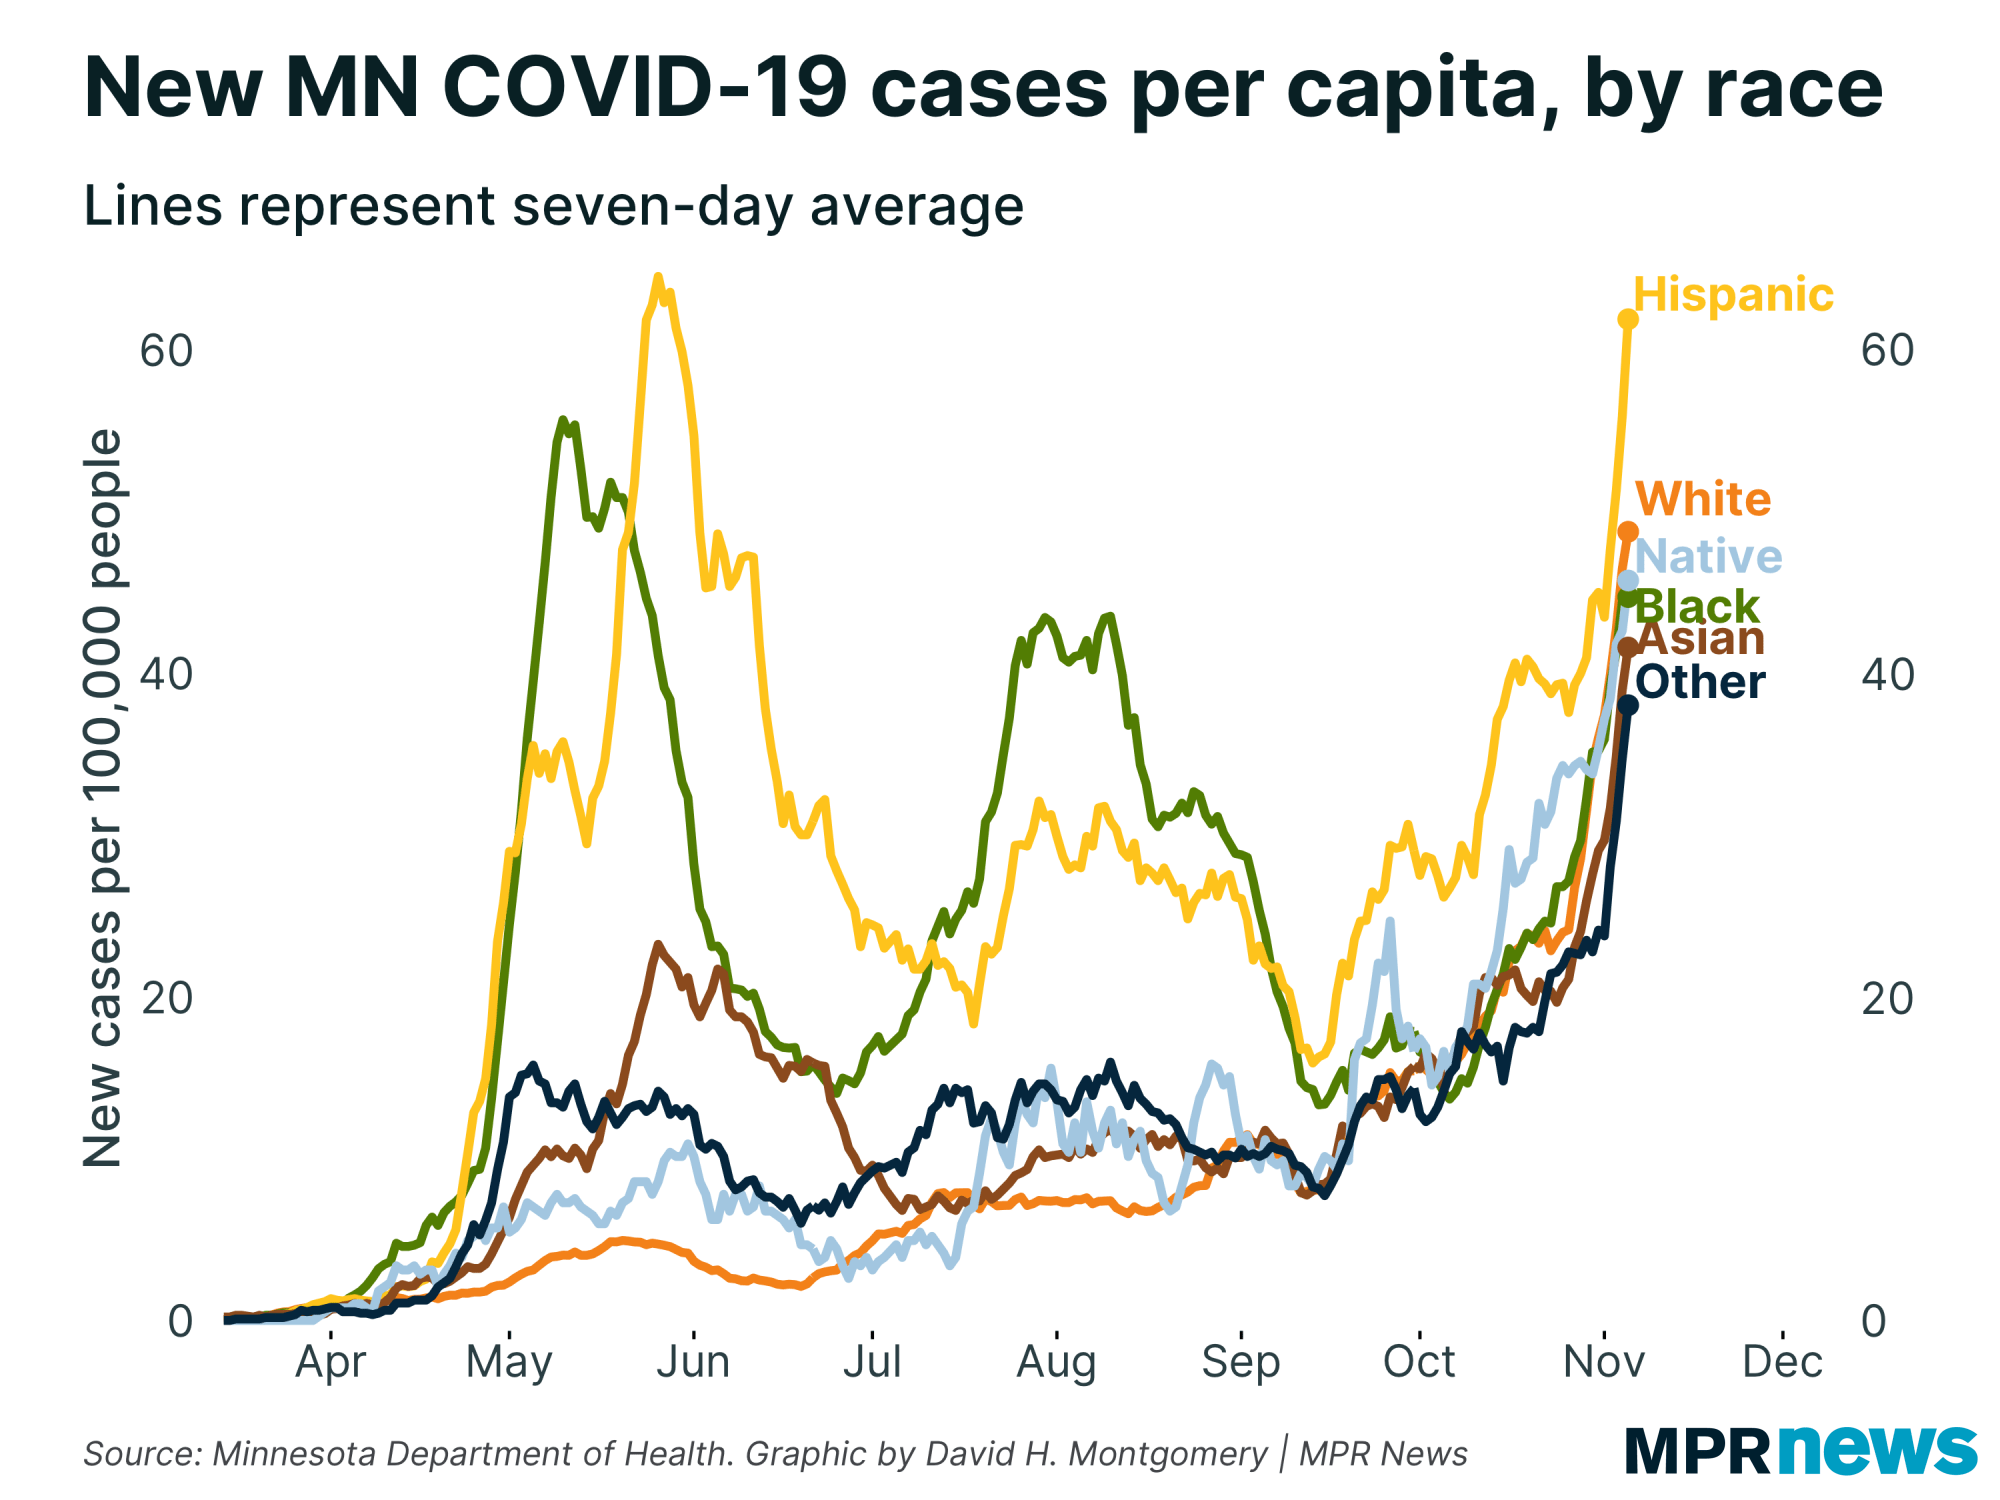 COVID-19 new cases per person by race